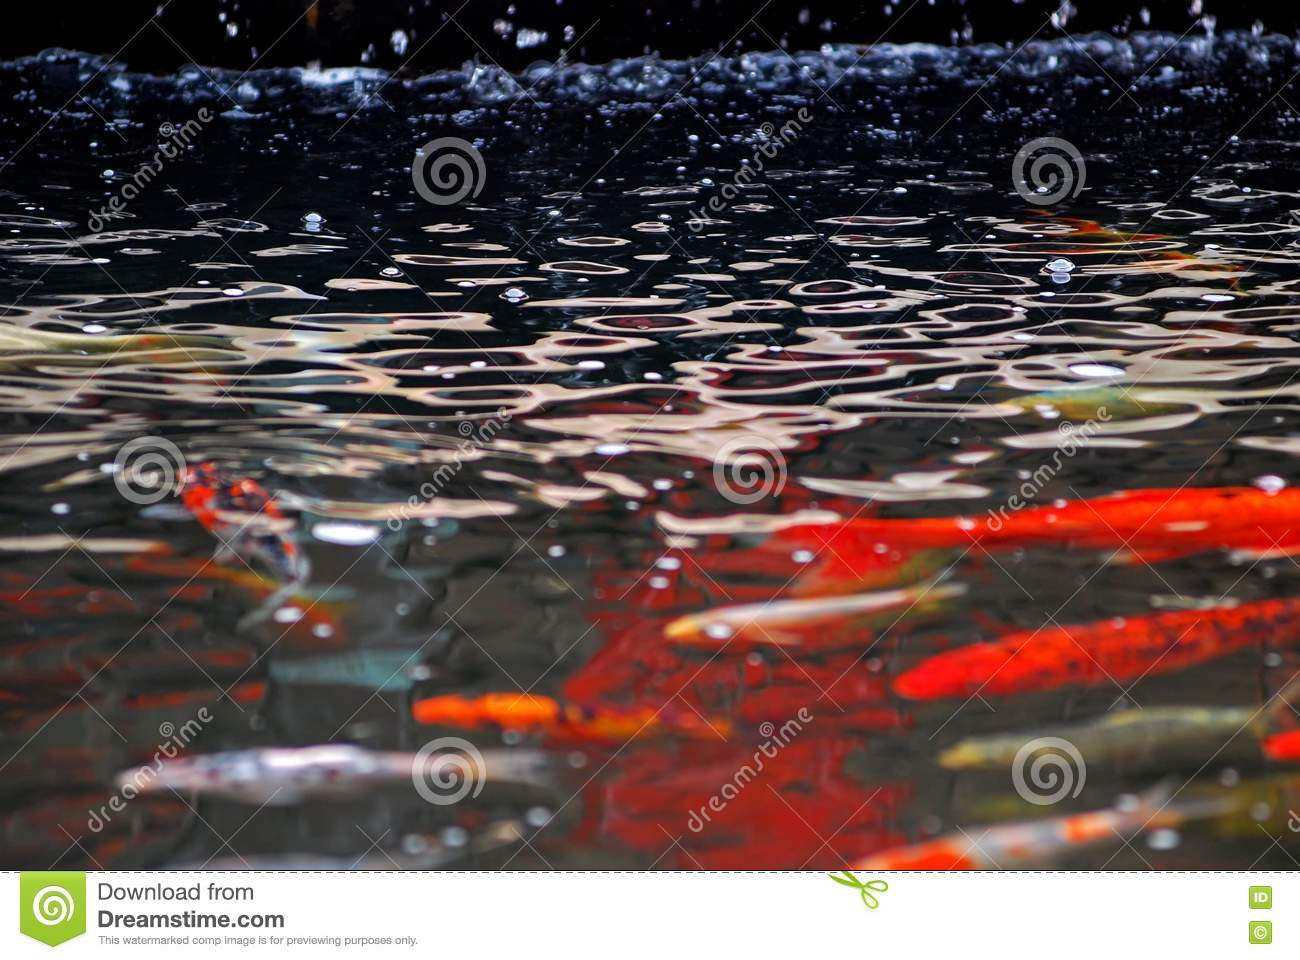 Koi fish swimming in the pond royalty free stock images for Dream of fish swimming